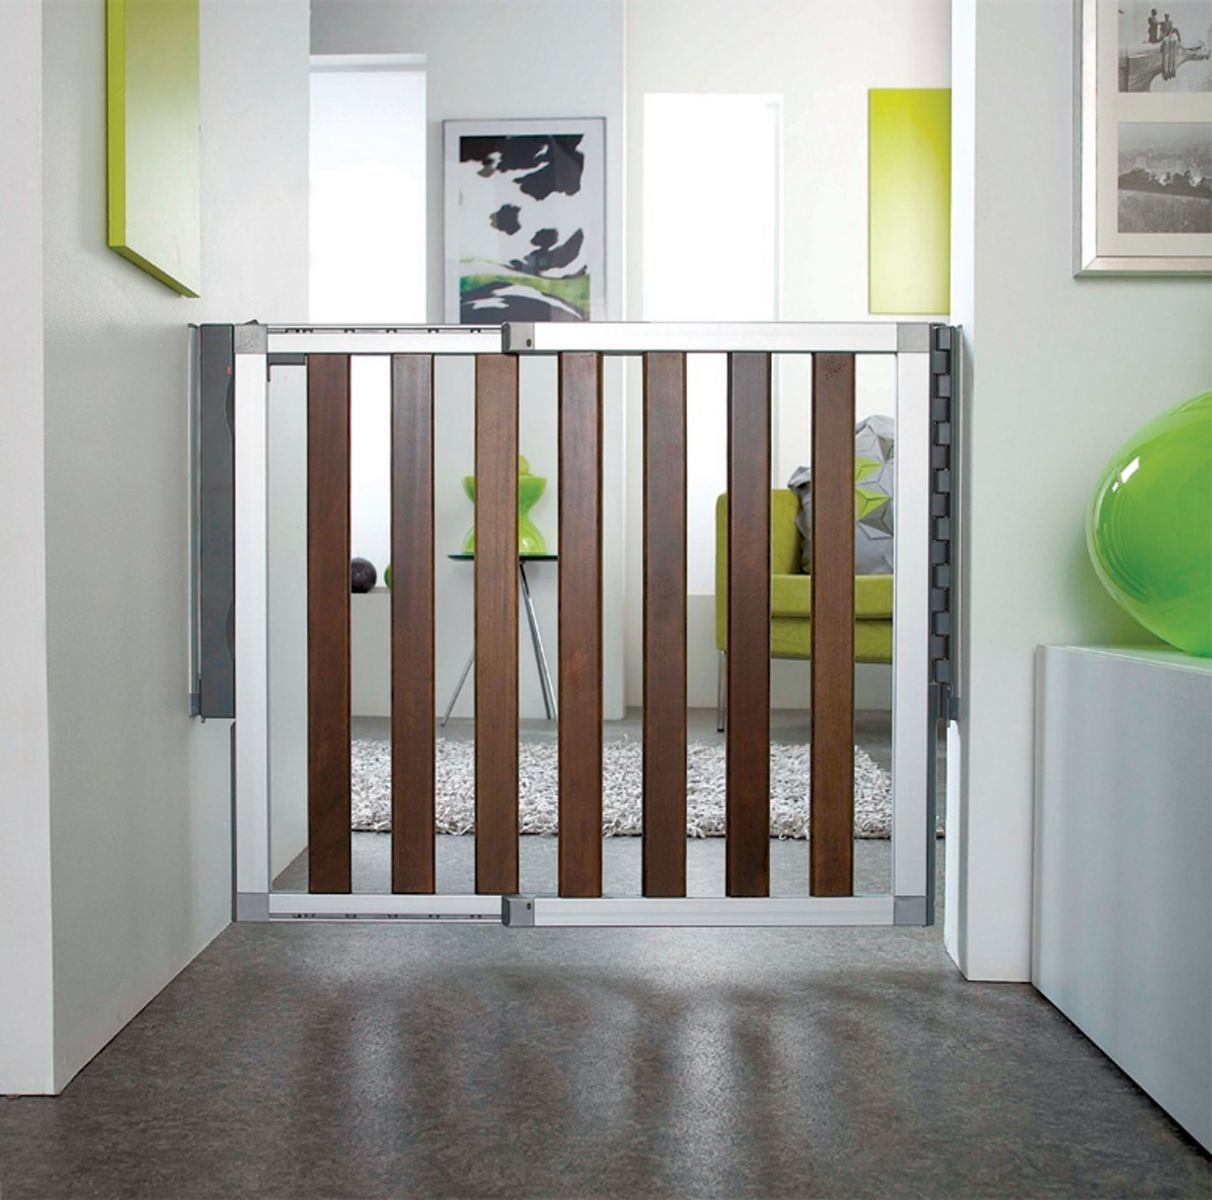 Stylish child proofing Loft baby gate from Munchkin